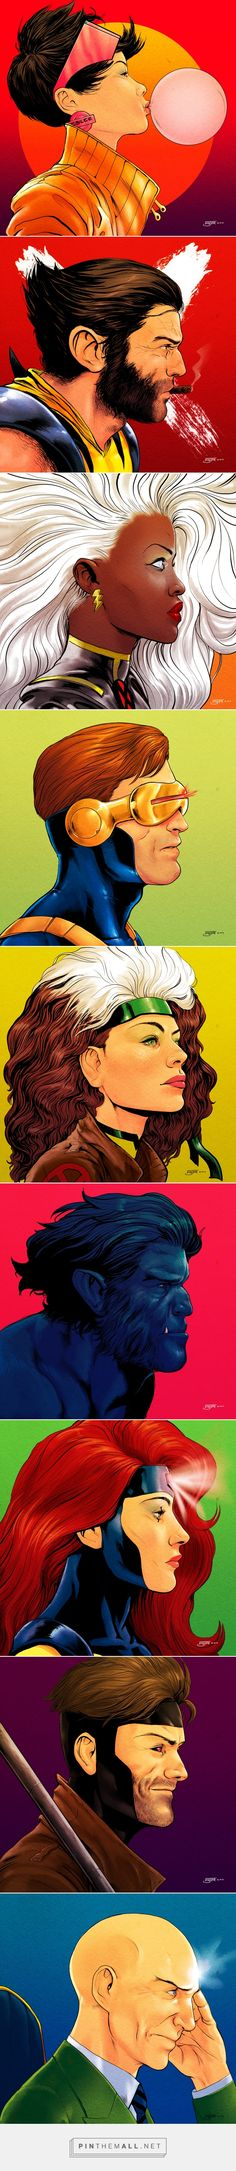 X-Men Portrait Project Love that the artist gave Rogue freckles -- don't see that too much, but it suits her.